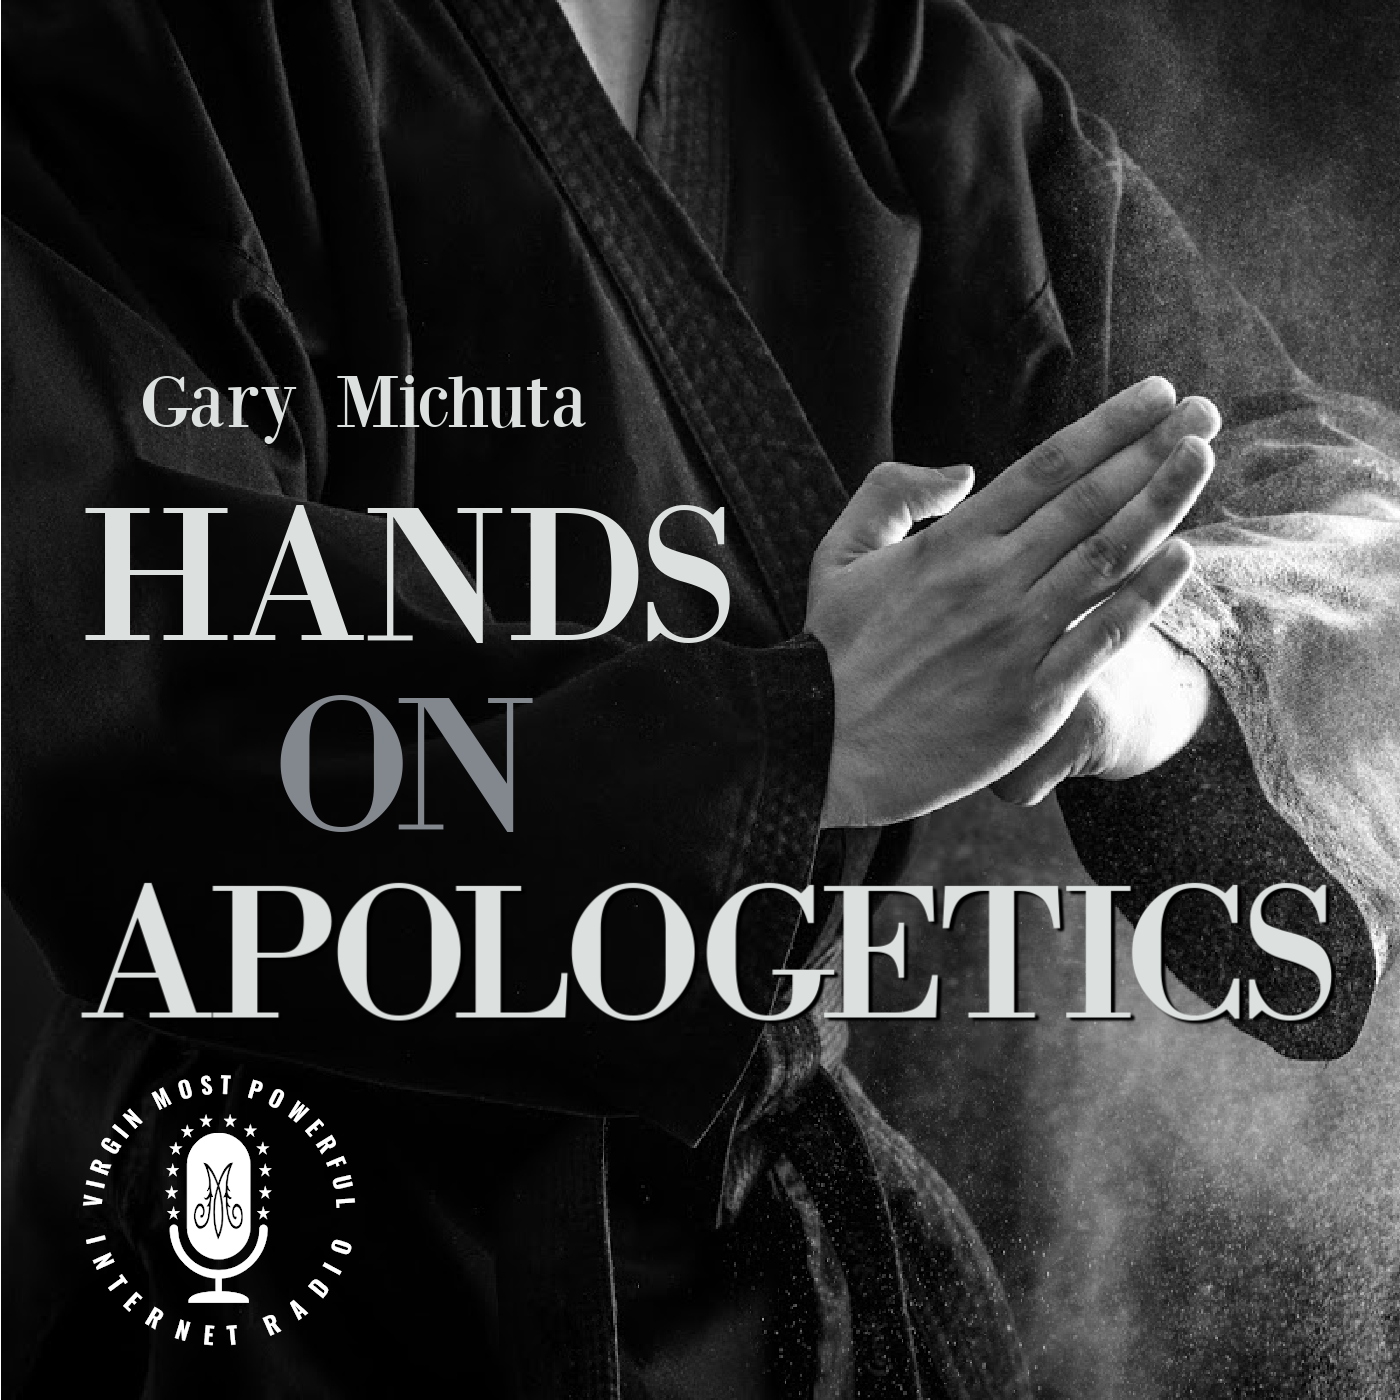 Listen to the Hands on Apologetics Episode - 27 May 2019 - Proving God's Existence - Guest, Dr. Edward Feser on iHeartRadio | iHeartRadio